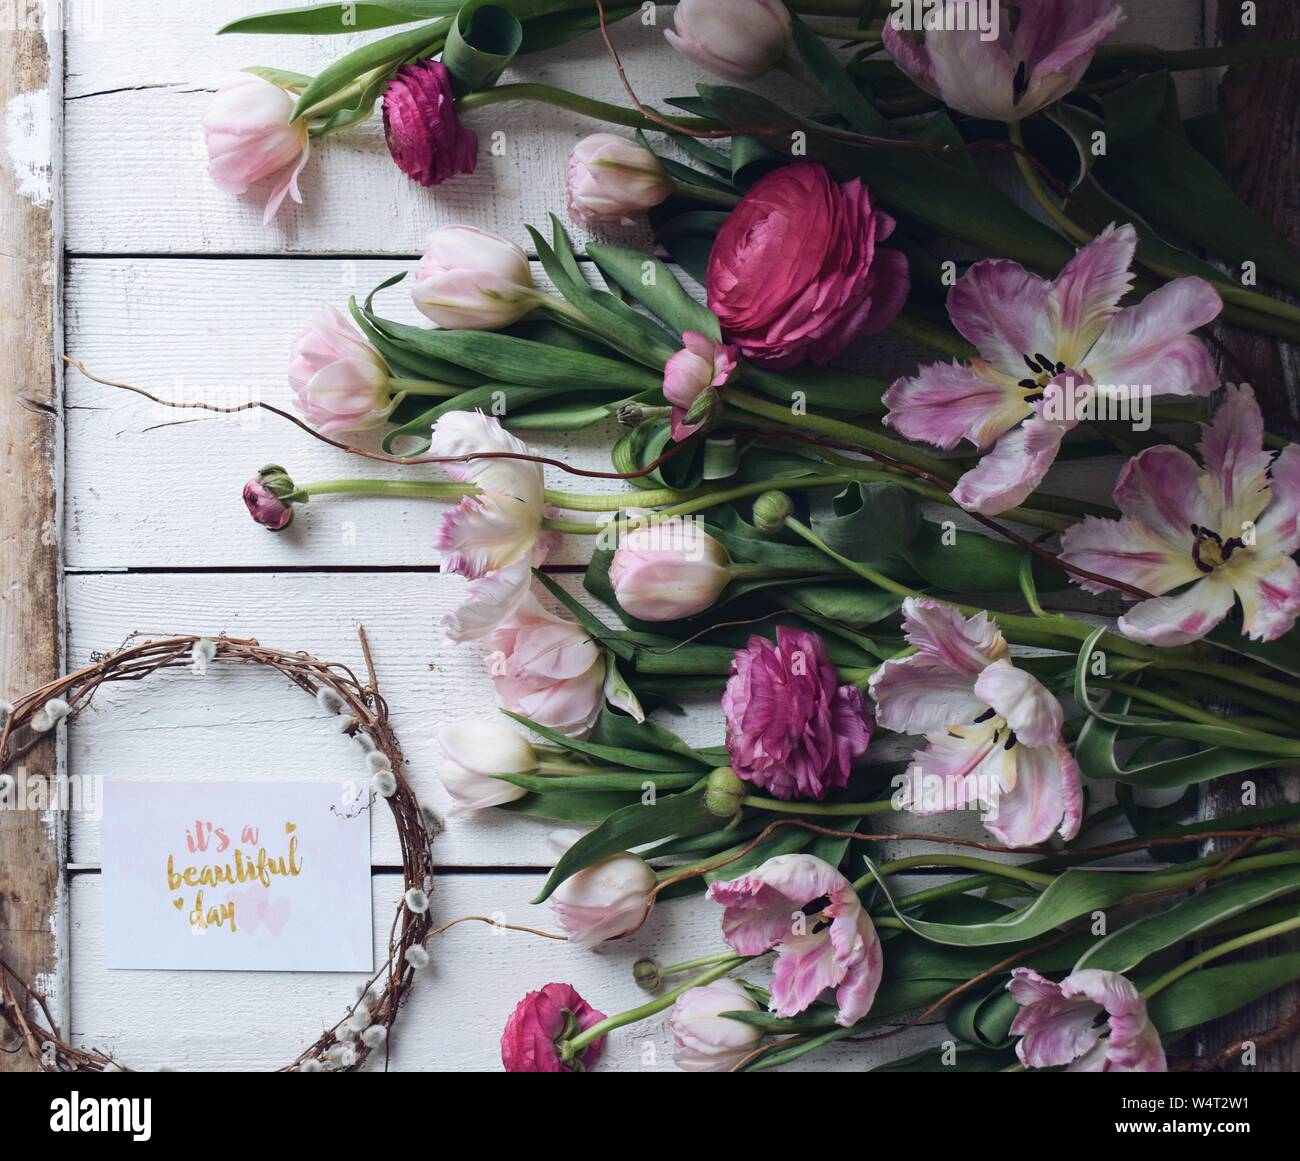 Pink tulips and ranunculus with a card saying it's a beautiful day Stock Photo